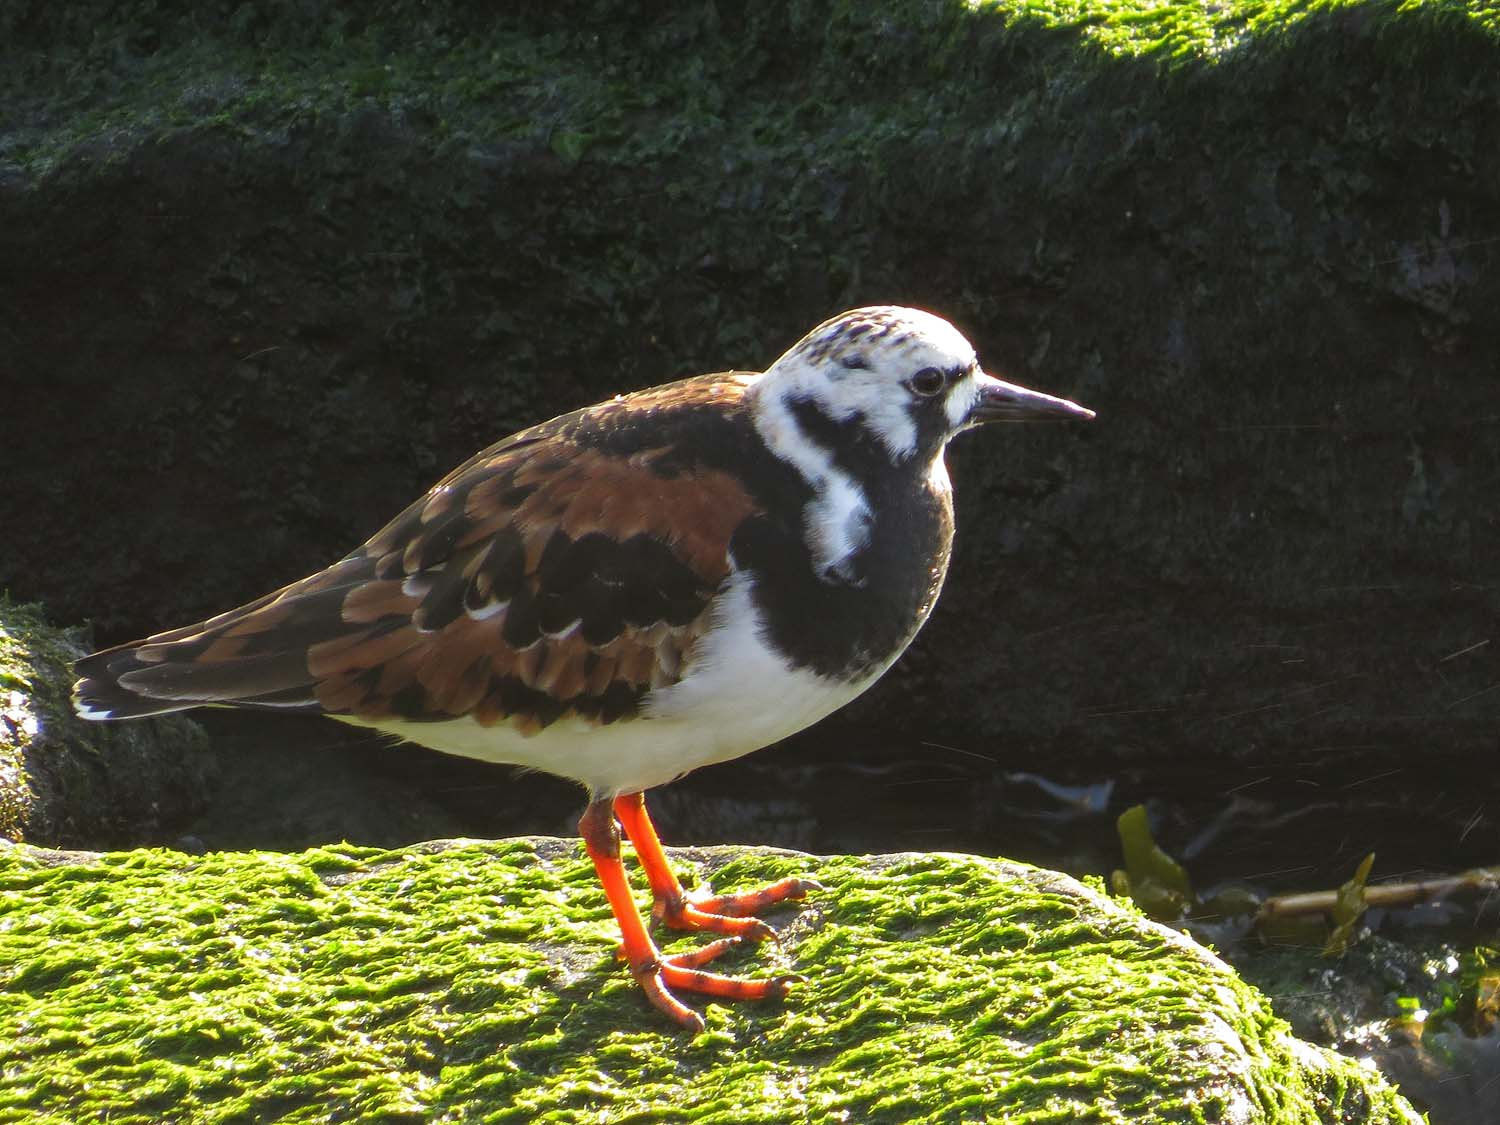 Ruddy turnstone, the Rockaways, May 14, 2017